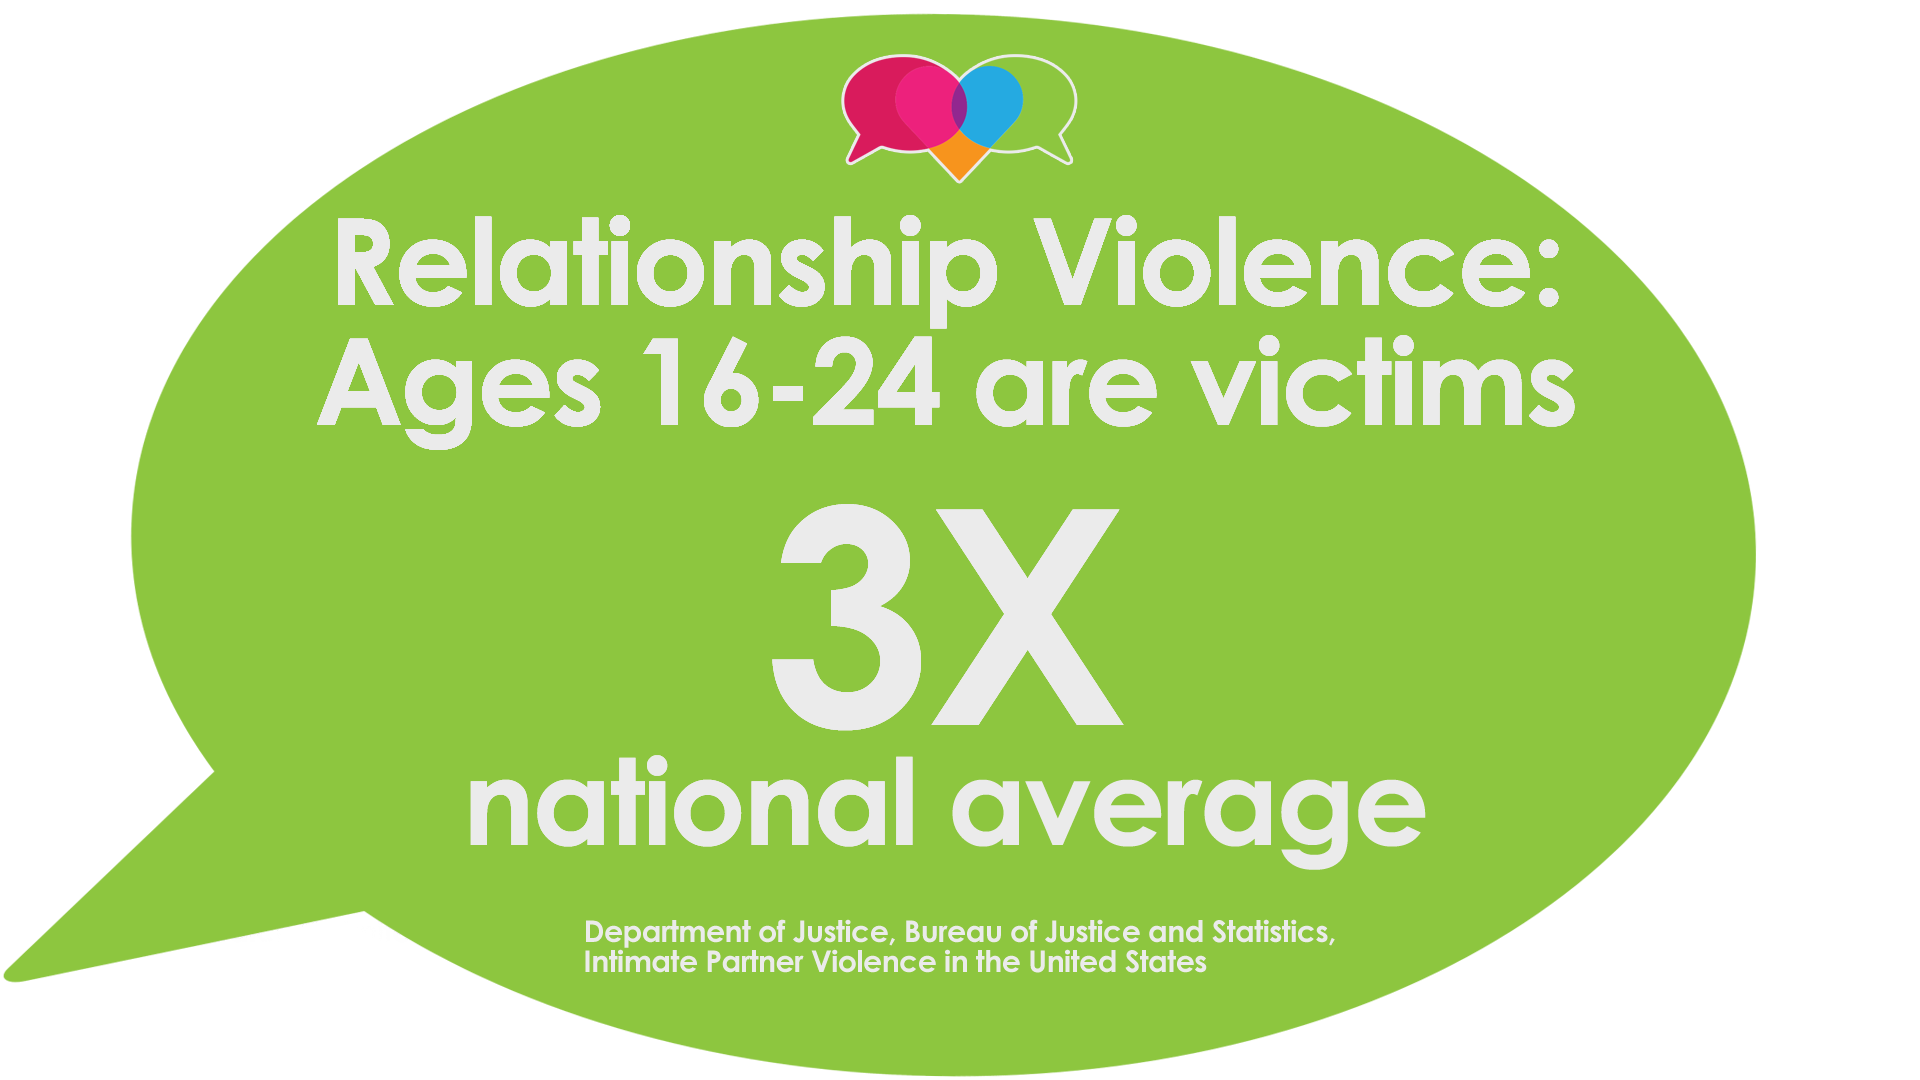 Relationship Violence: Ages 16 - 24 are victims 3 times the national average